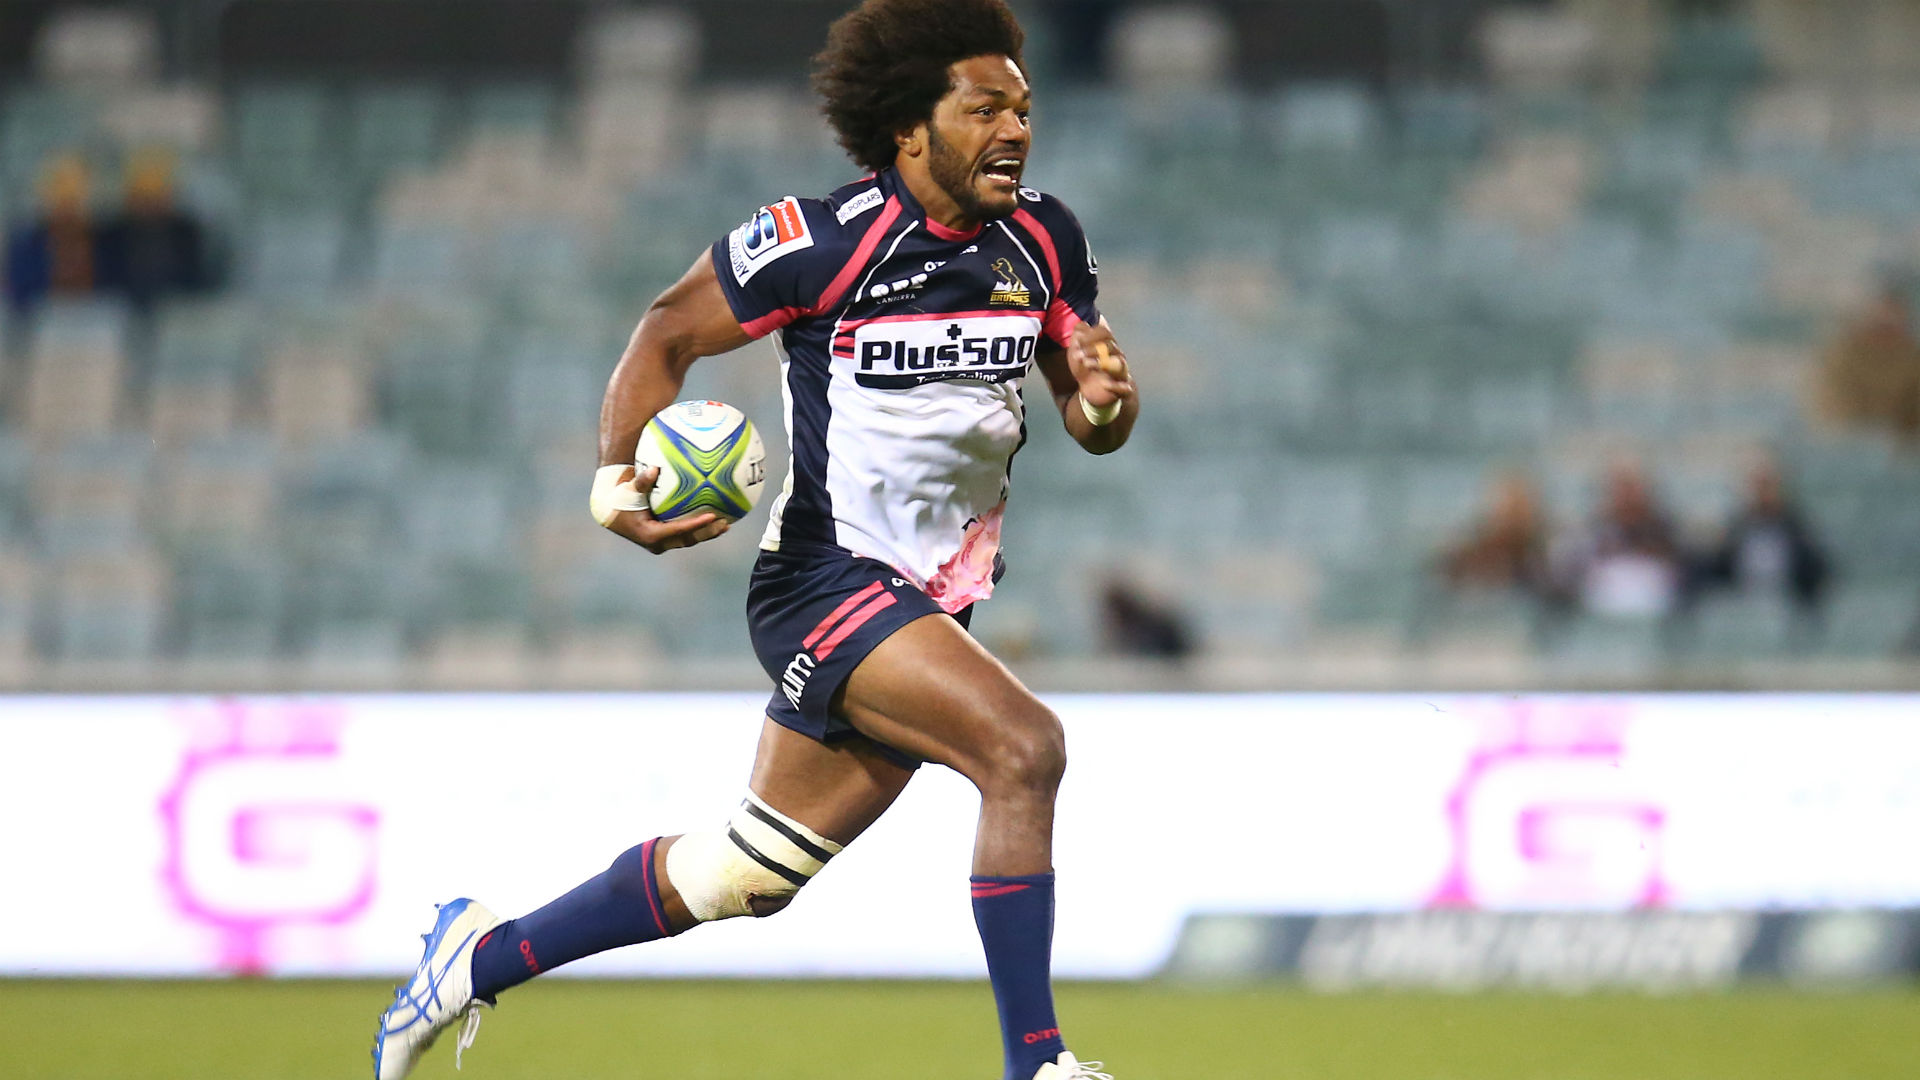 The Brumbies have been dealt another blow, with confirmation that Henry Speight will leave the club to join the Reds at the end of 2019.